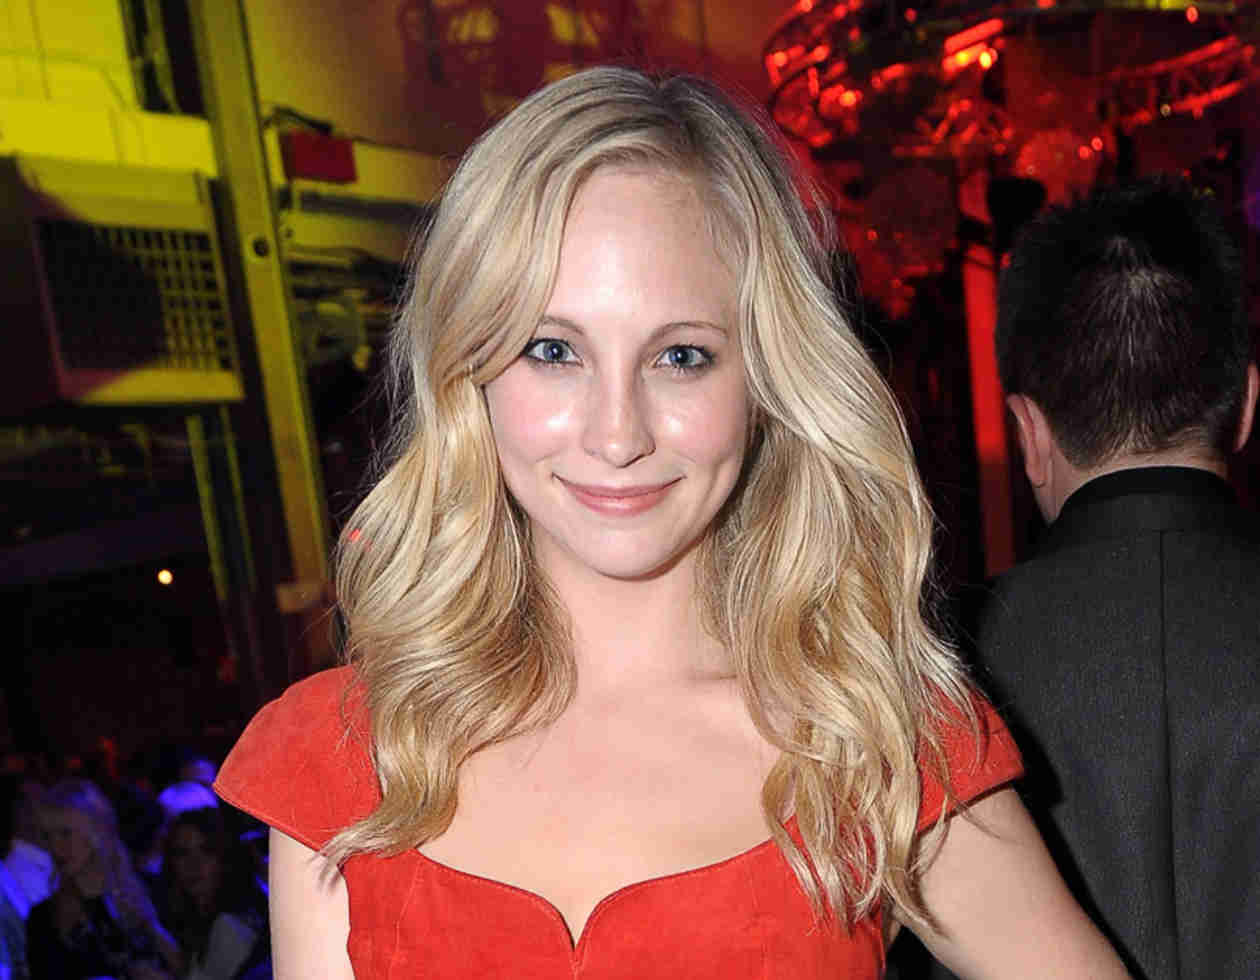 Candice Accola's Twitter Account Hacked!